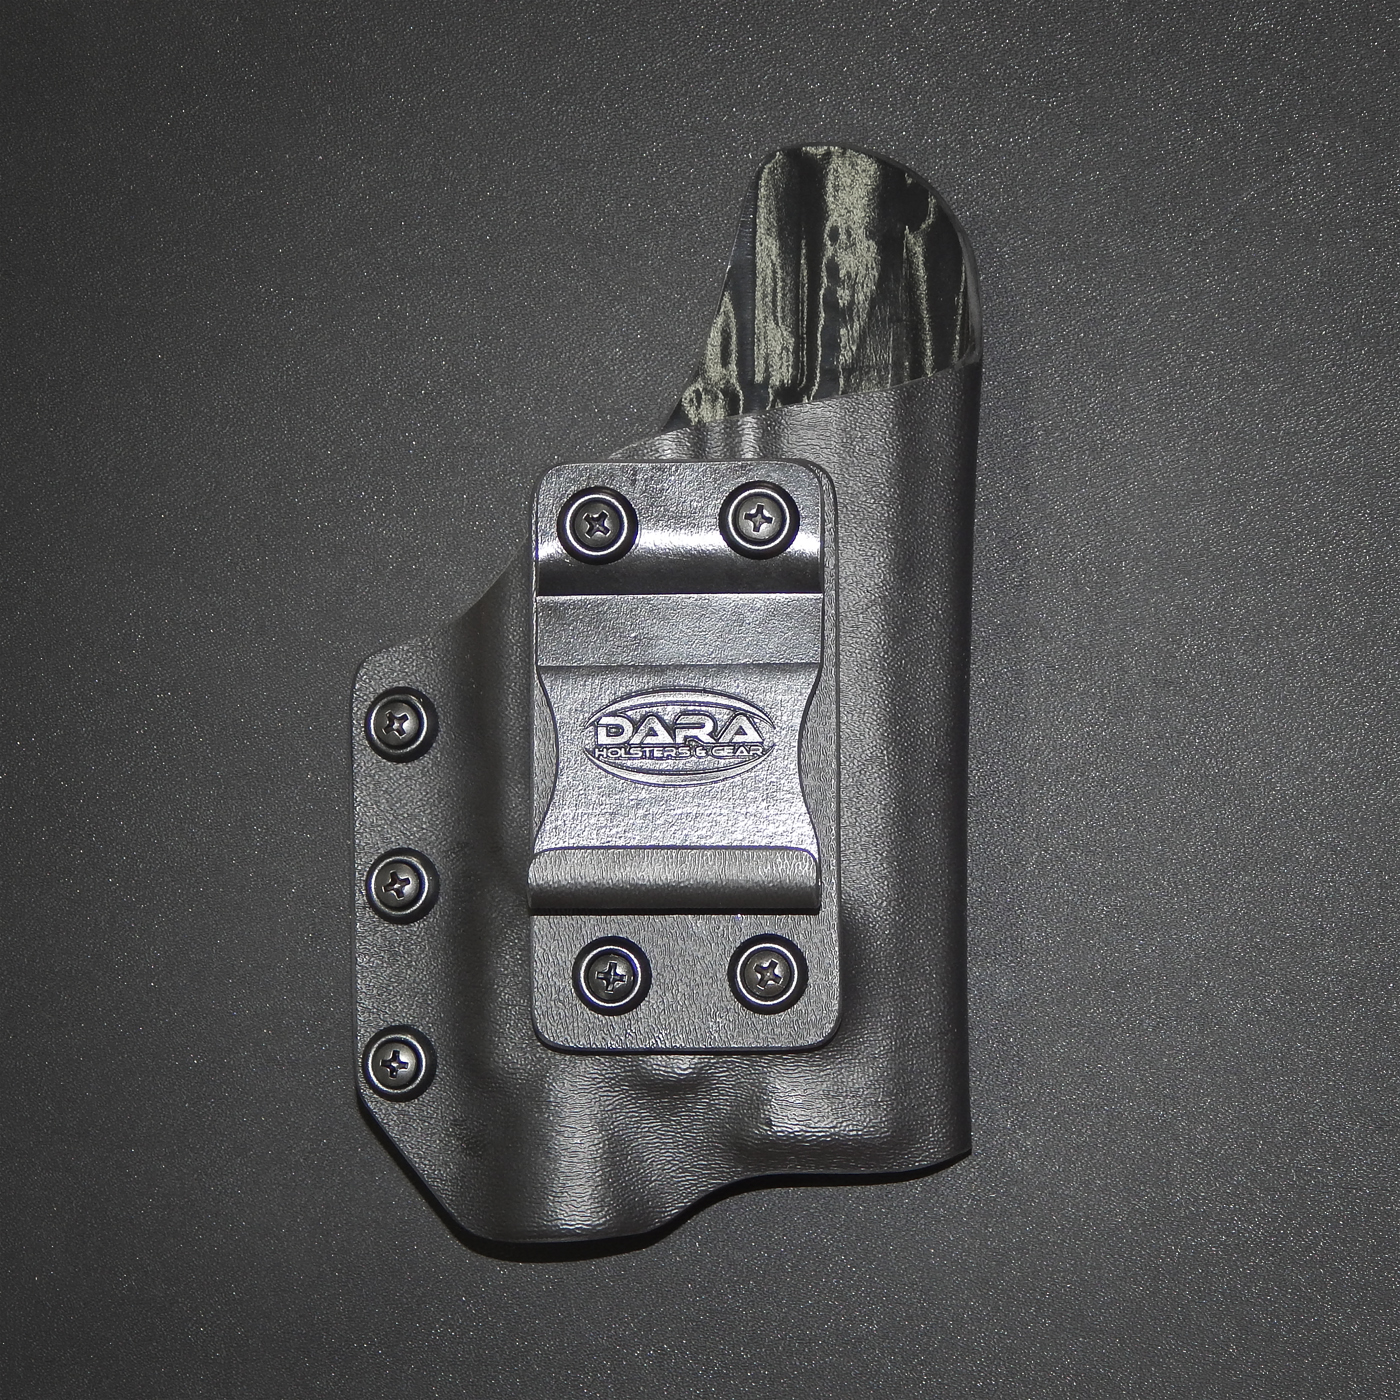 Pistol Weapon Light: The Streamlight TLR-1 - DARA HOLSTERS